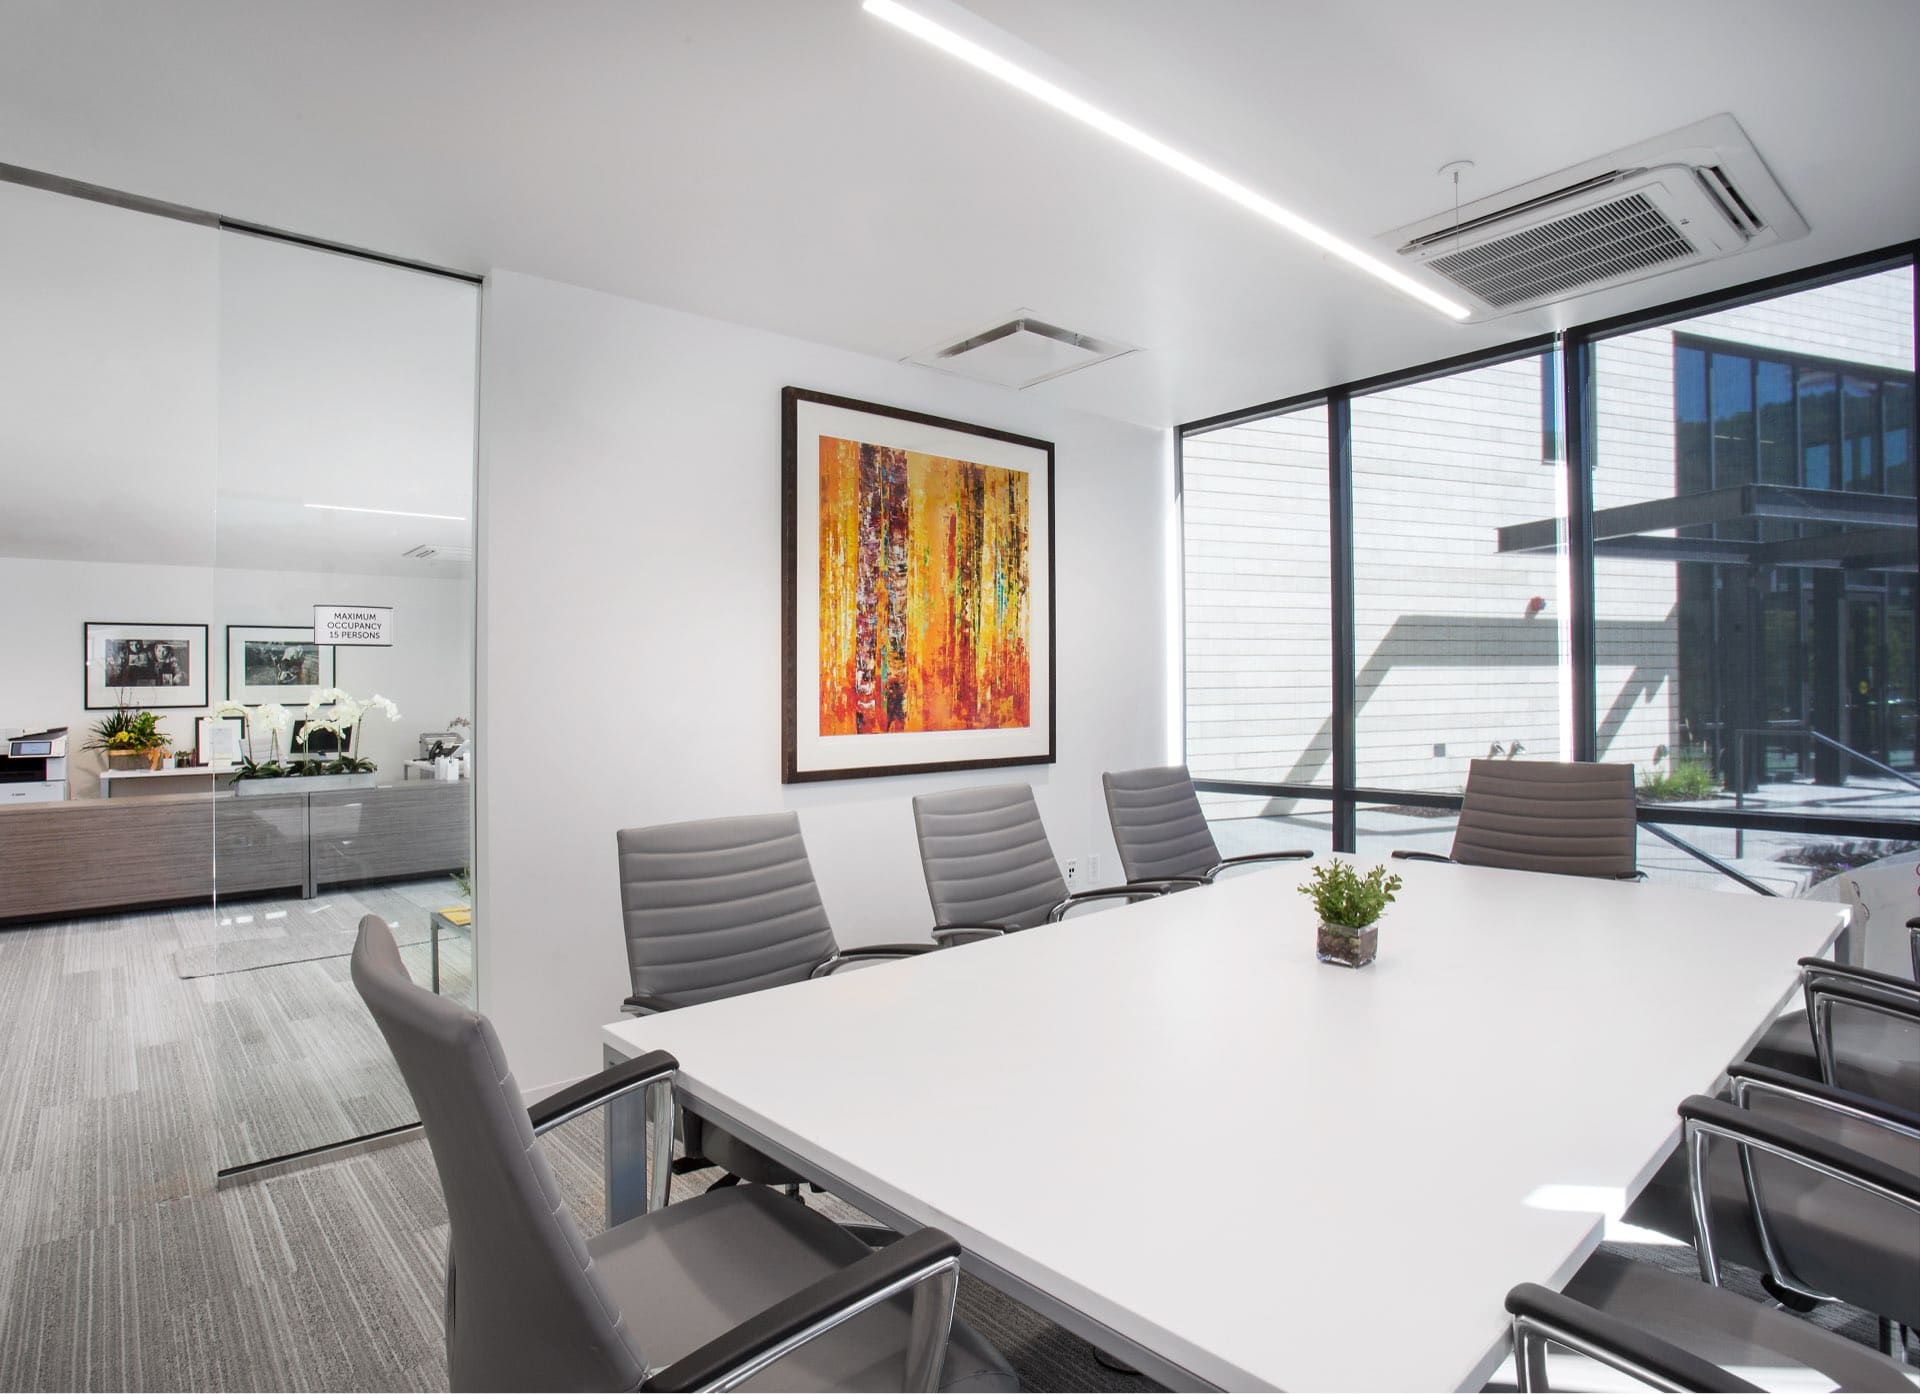 Conference room, Christian Center of Park City, architectural design by Elliott Workgroup